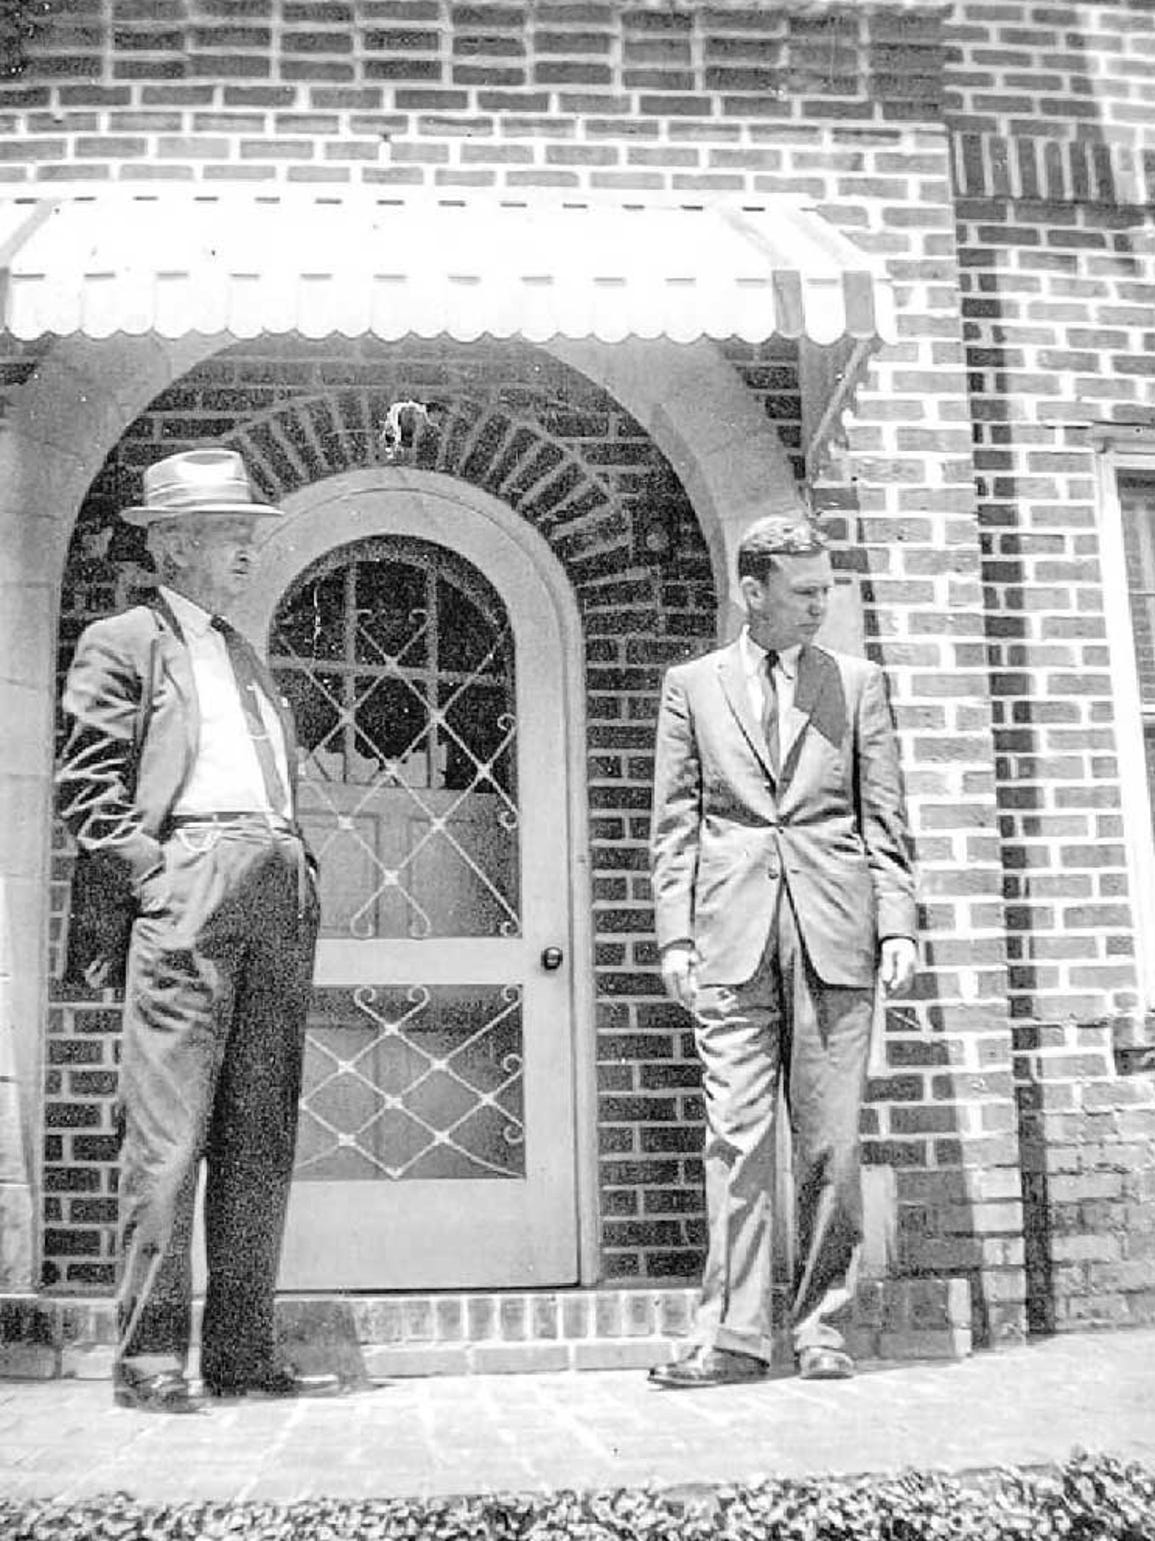 T.S. Green, left, stands with one of his sones, T.S.